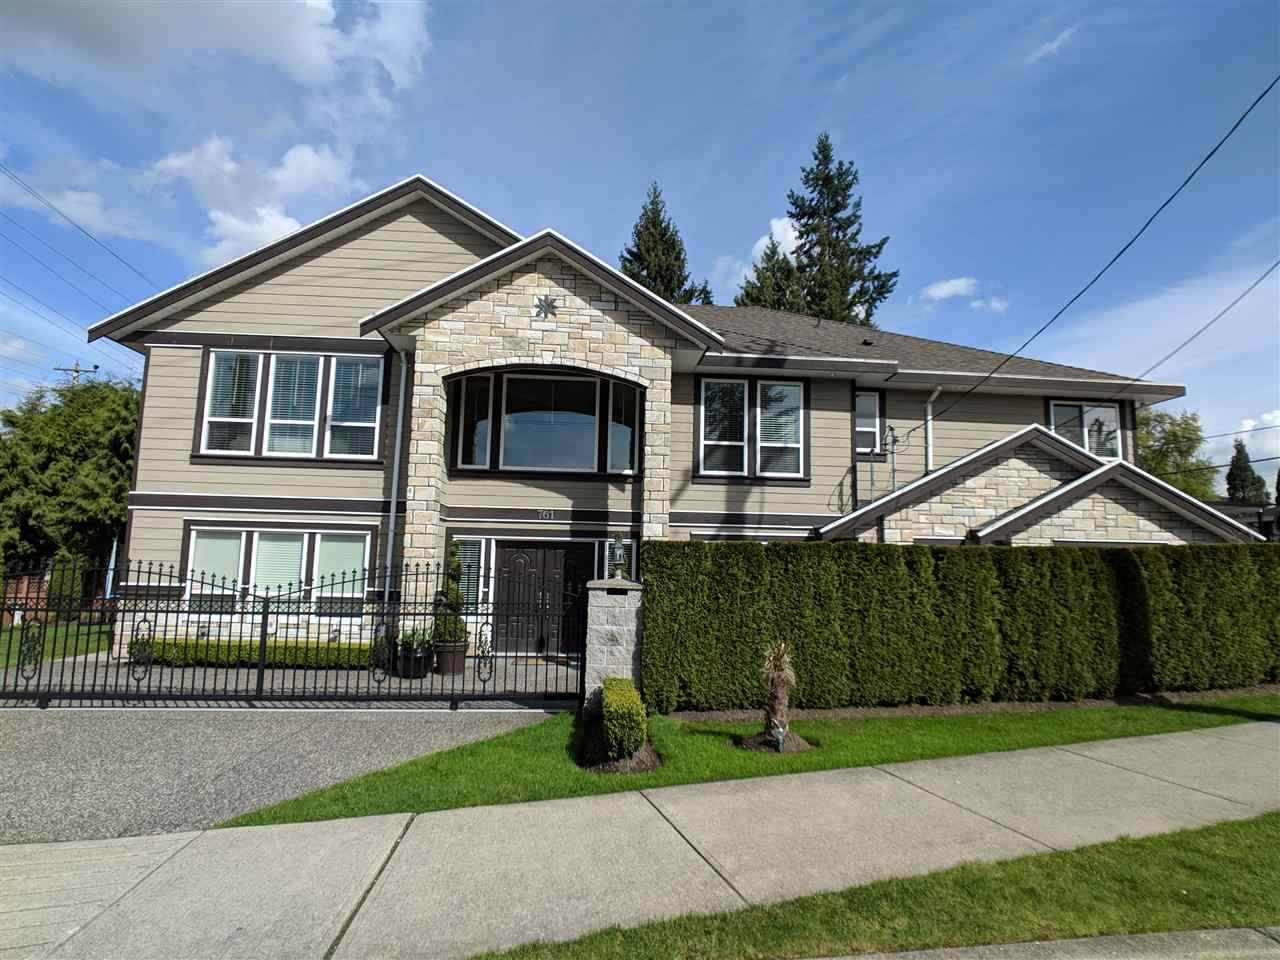 Removed: 761 Porter Street, Coquitlam, BC - Removed on 2018-12-01 05:12:04